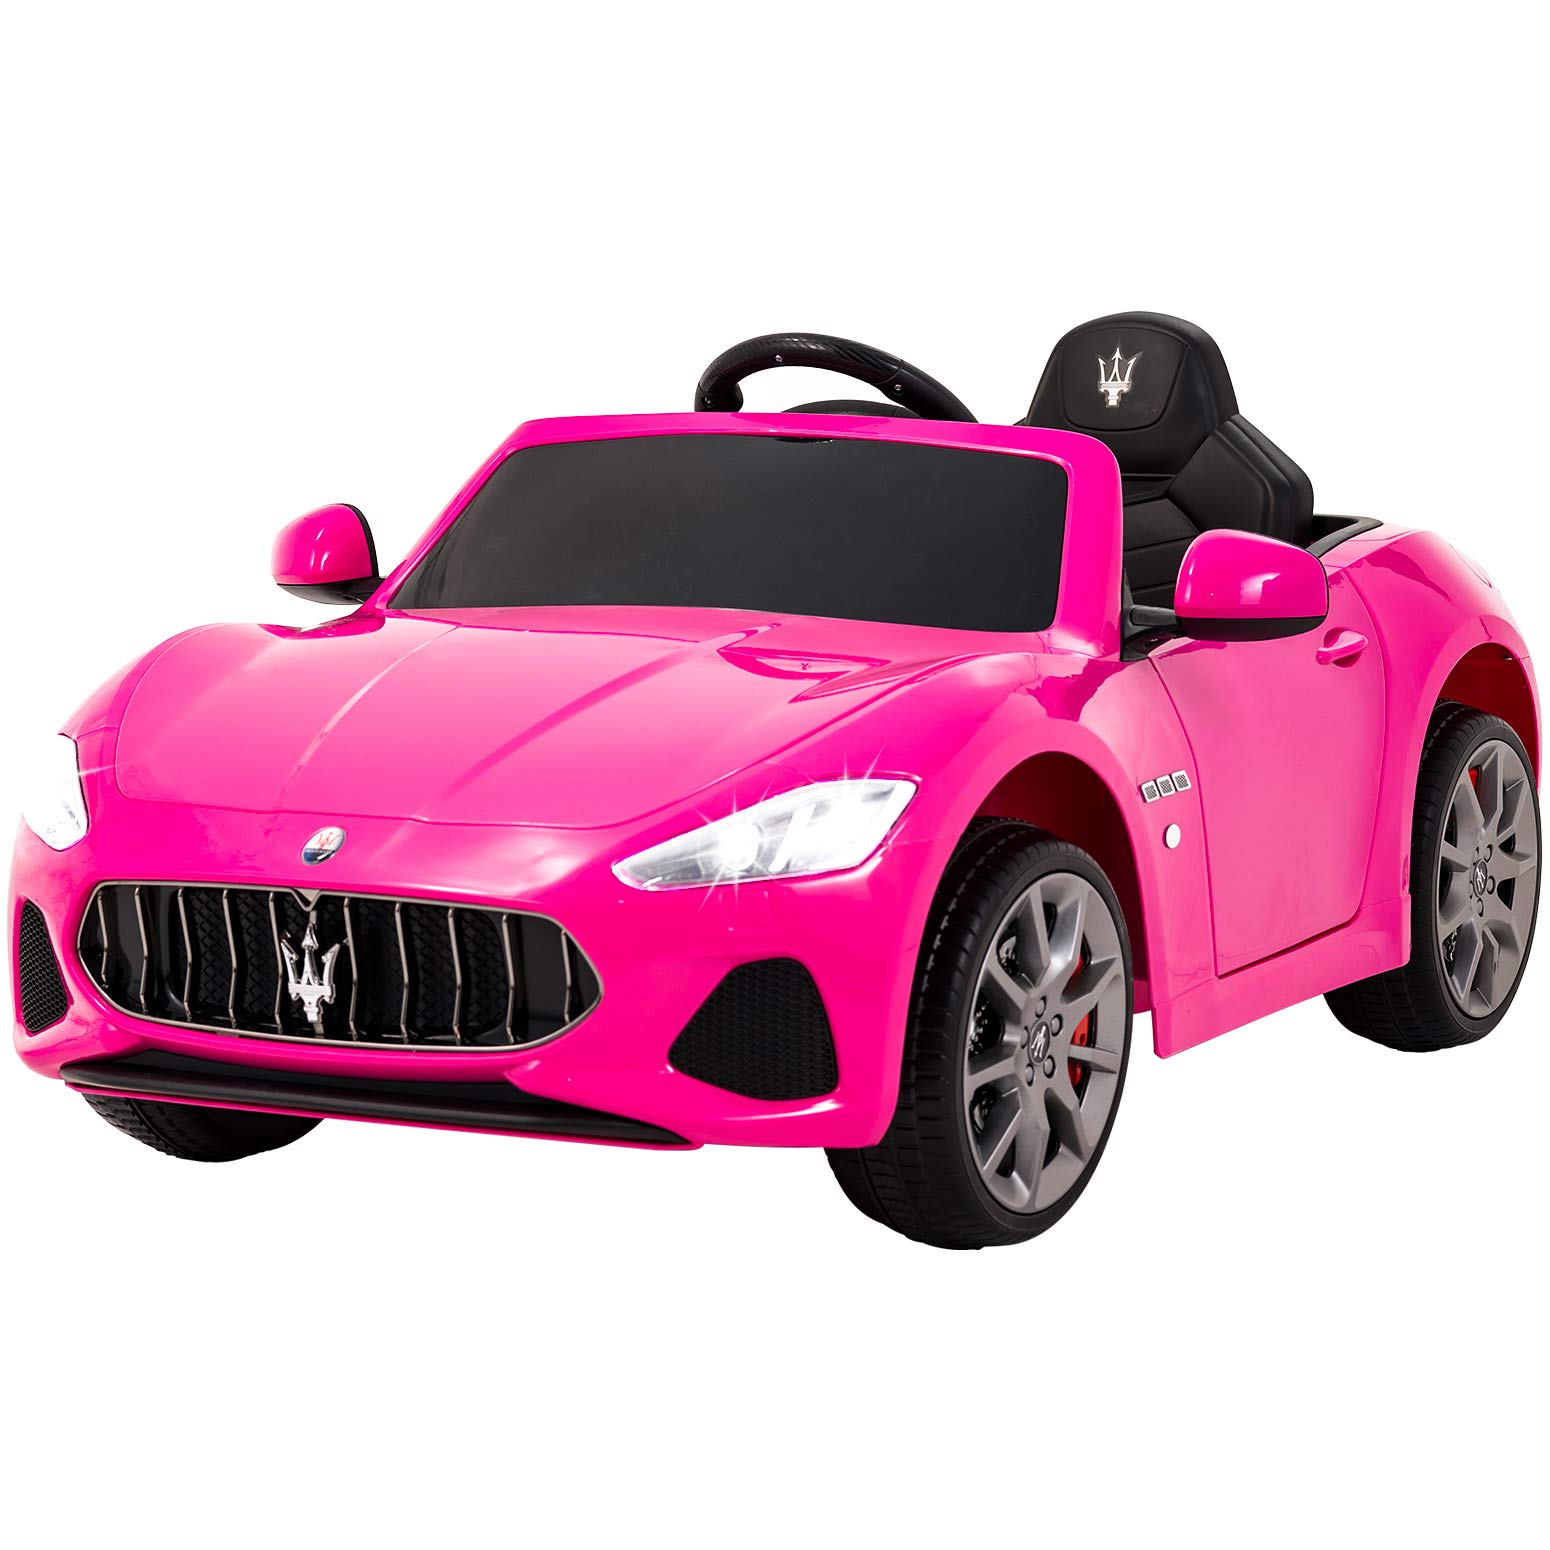 Uenjoy Maserati Grancabrio 12V Electric Kids Ride On Cars Motorized Vehicles for Girls W/Remote Control, Wheels Suspension, Mp3 Player, Light, Pink